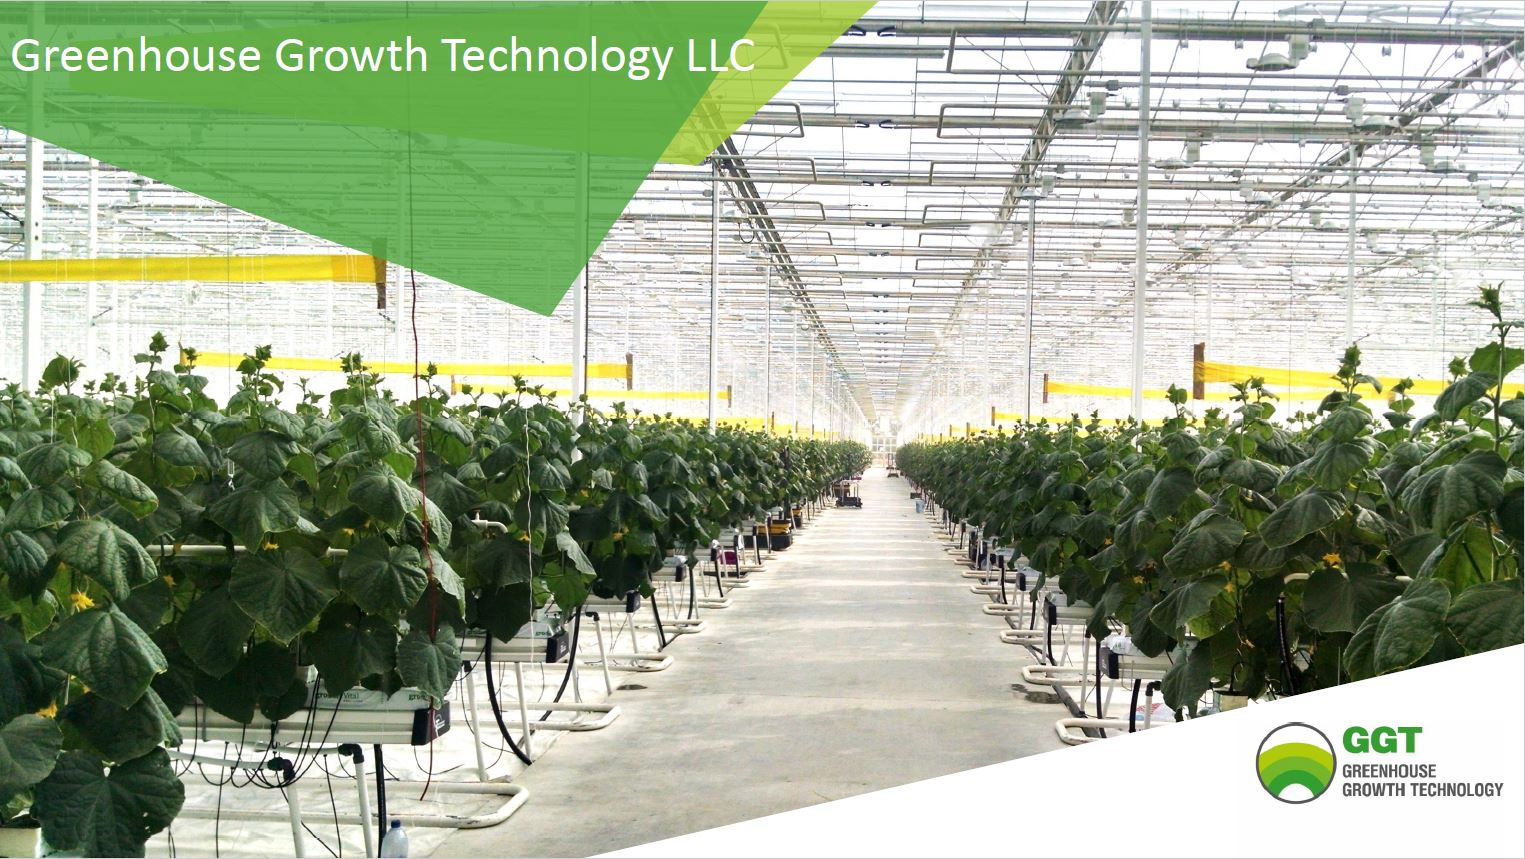 Greenhouse Growth Technology LLC